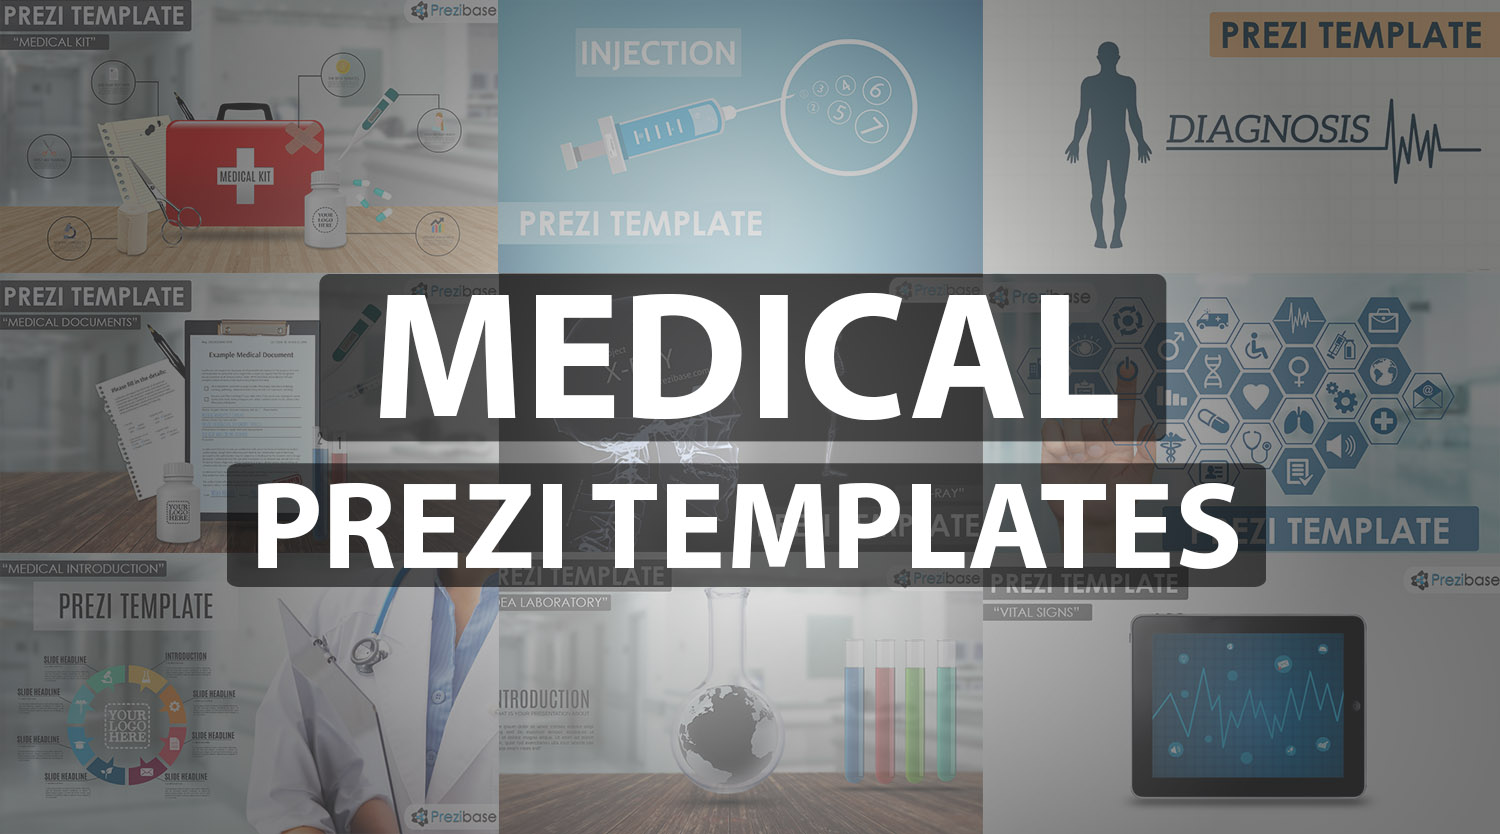 medical-healthcare-hospital-prezi-templates.jpg